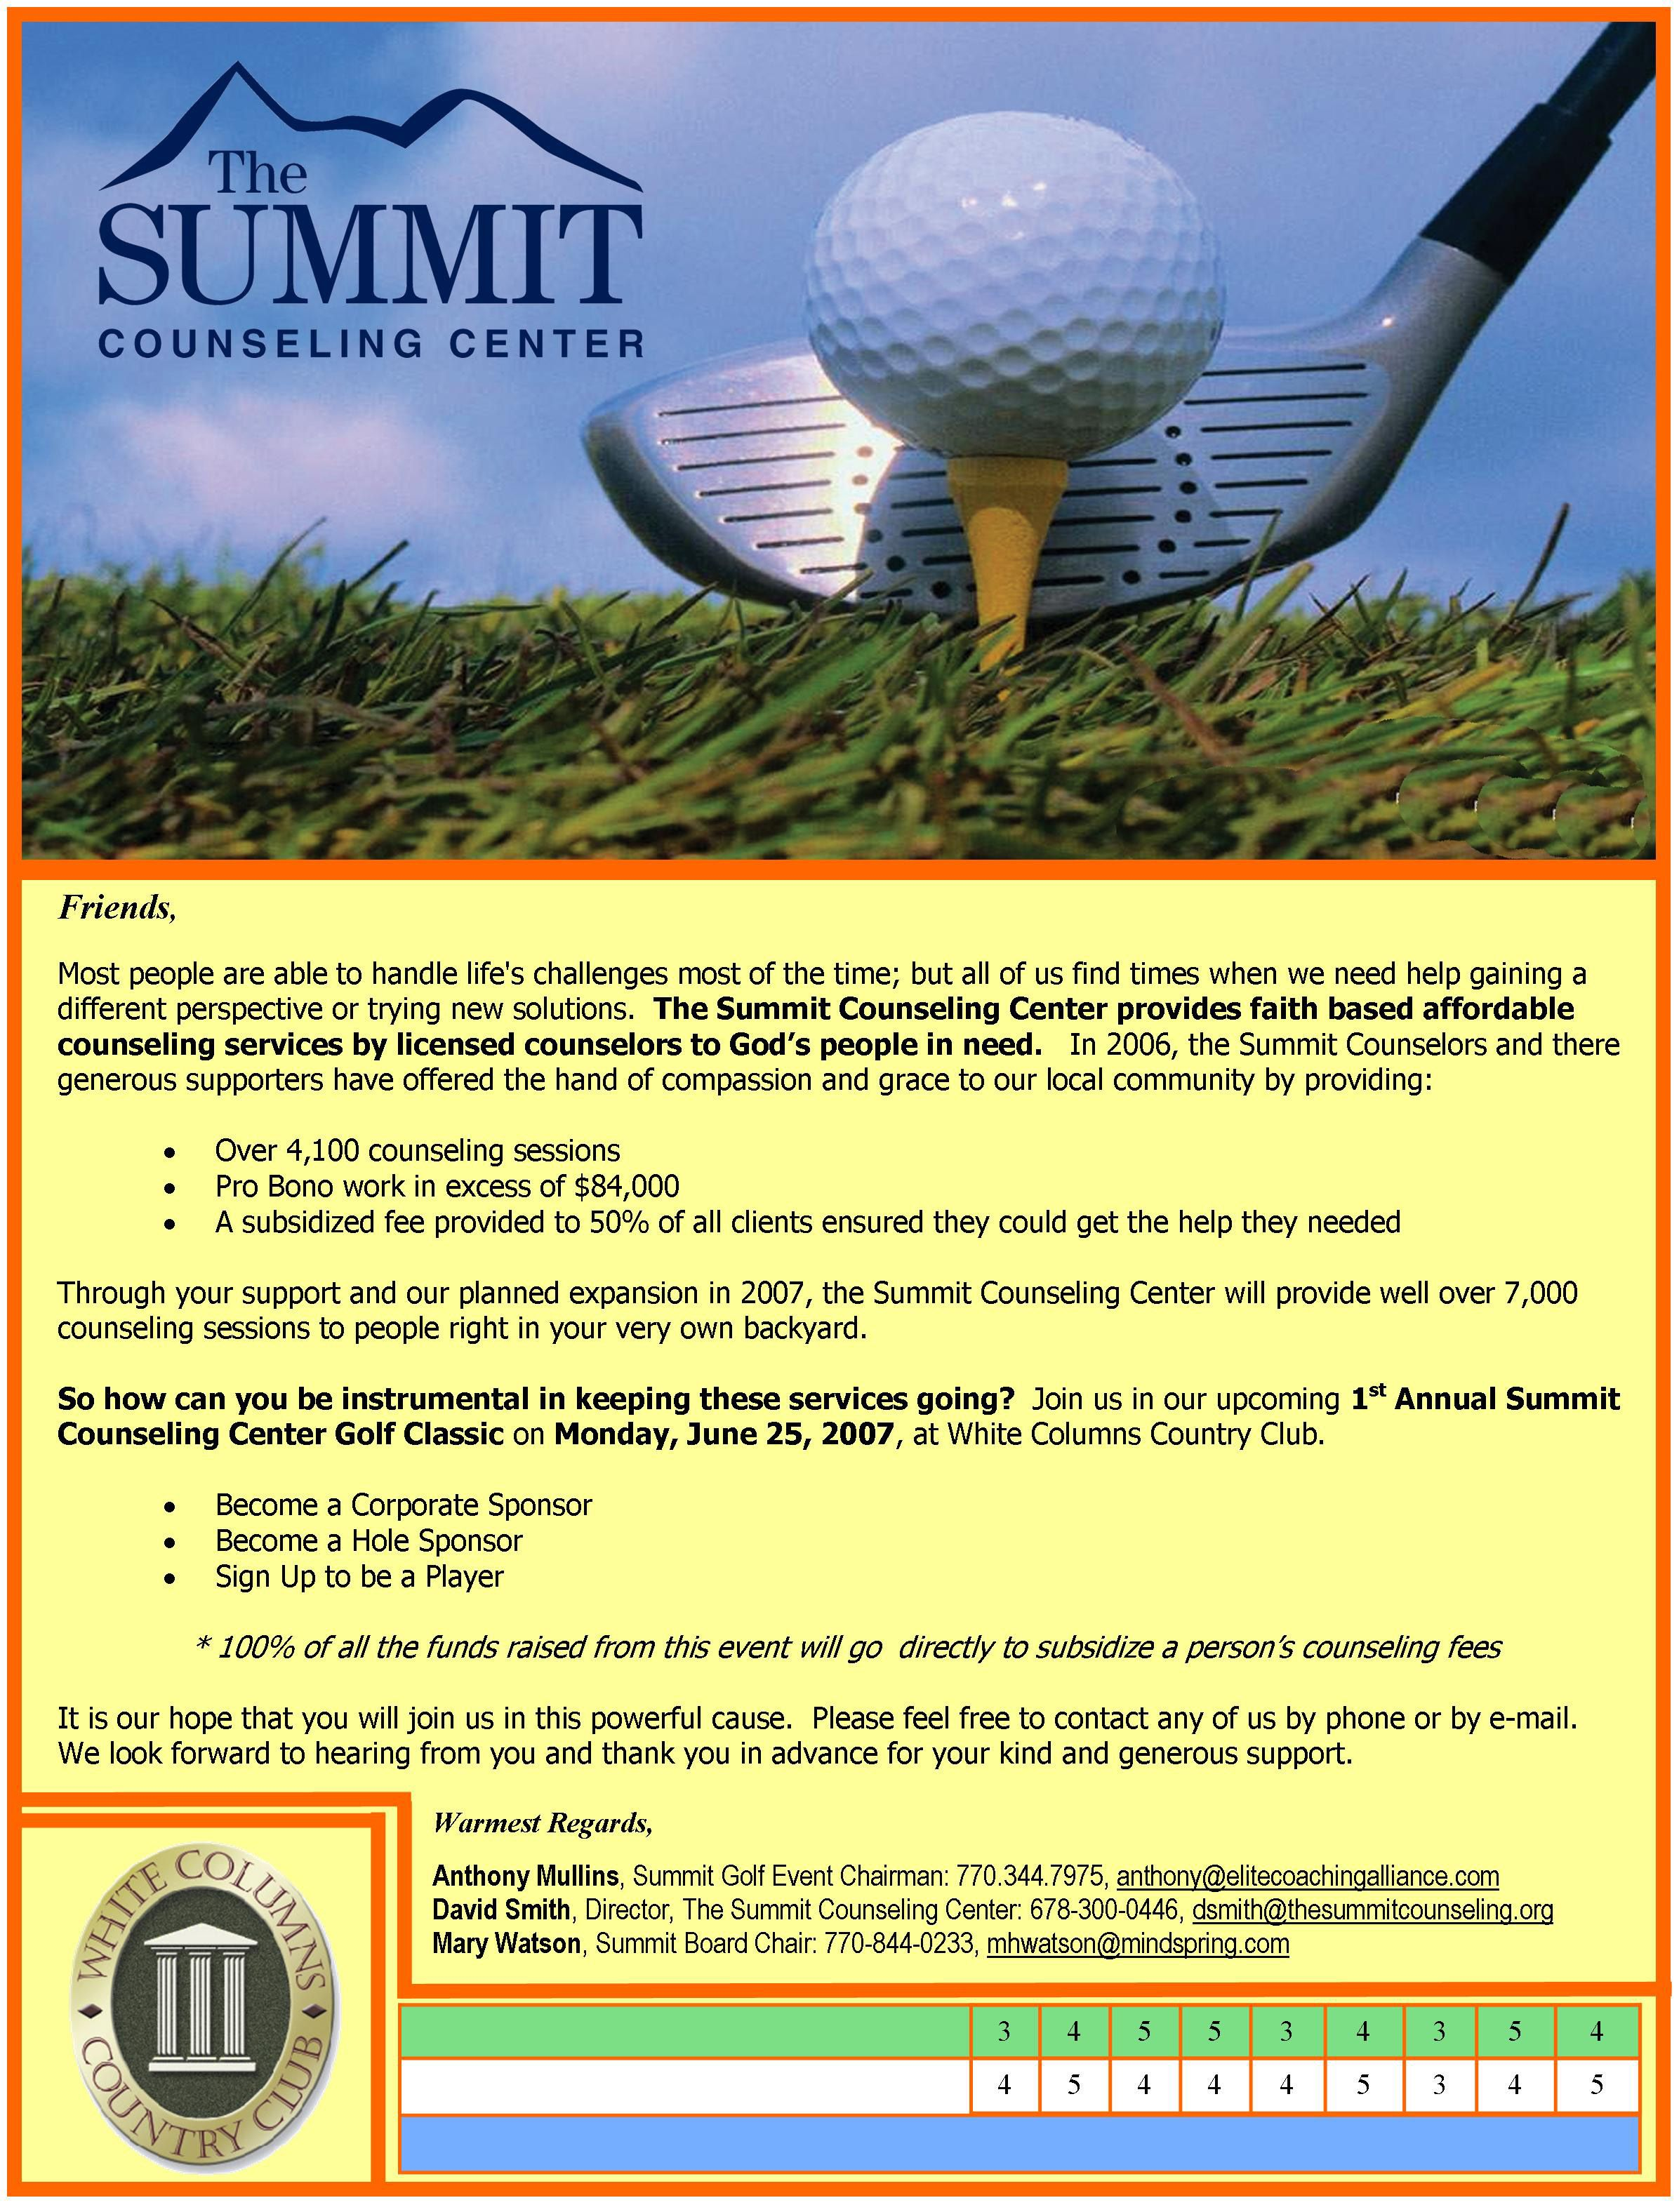 Summit Counseling Center Annual Golf Tournament Fundraiser